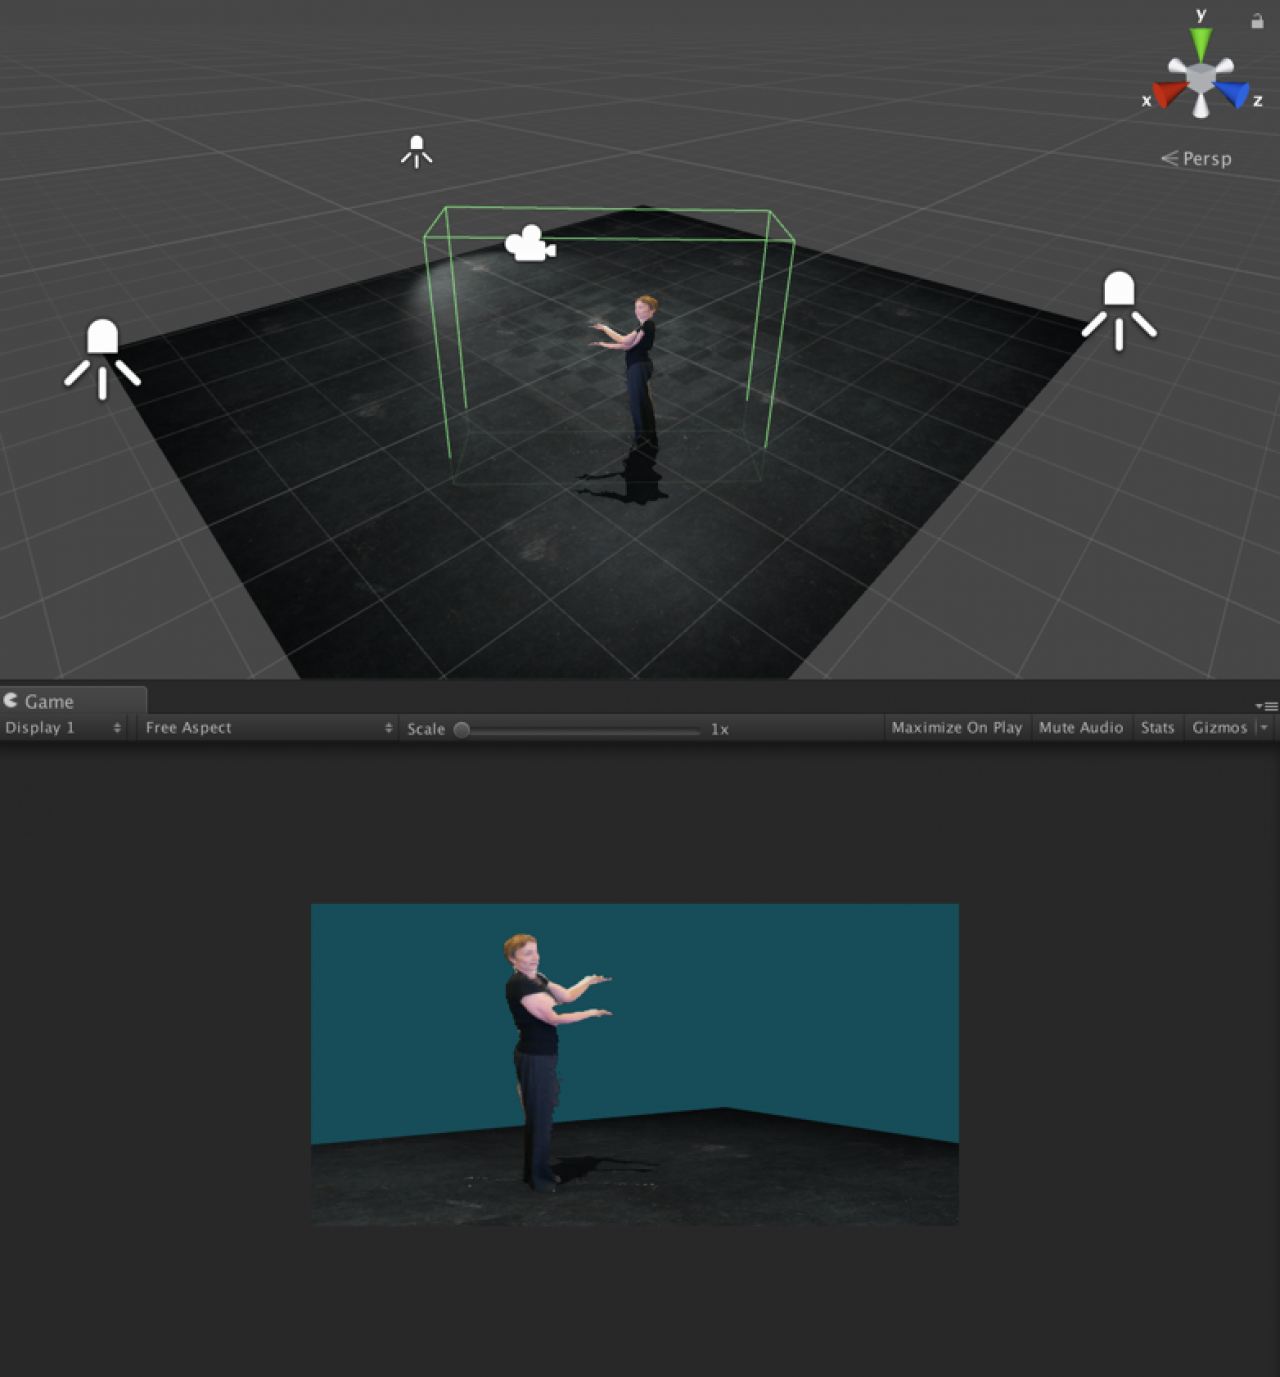 A screenshot of volumetric capture of a figure